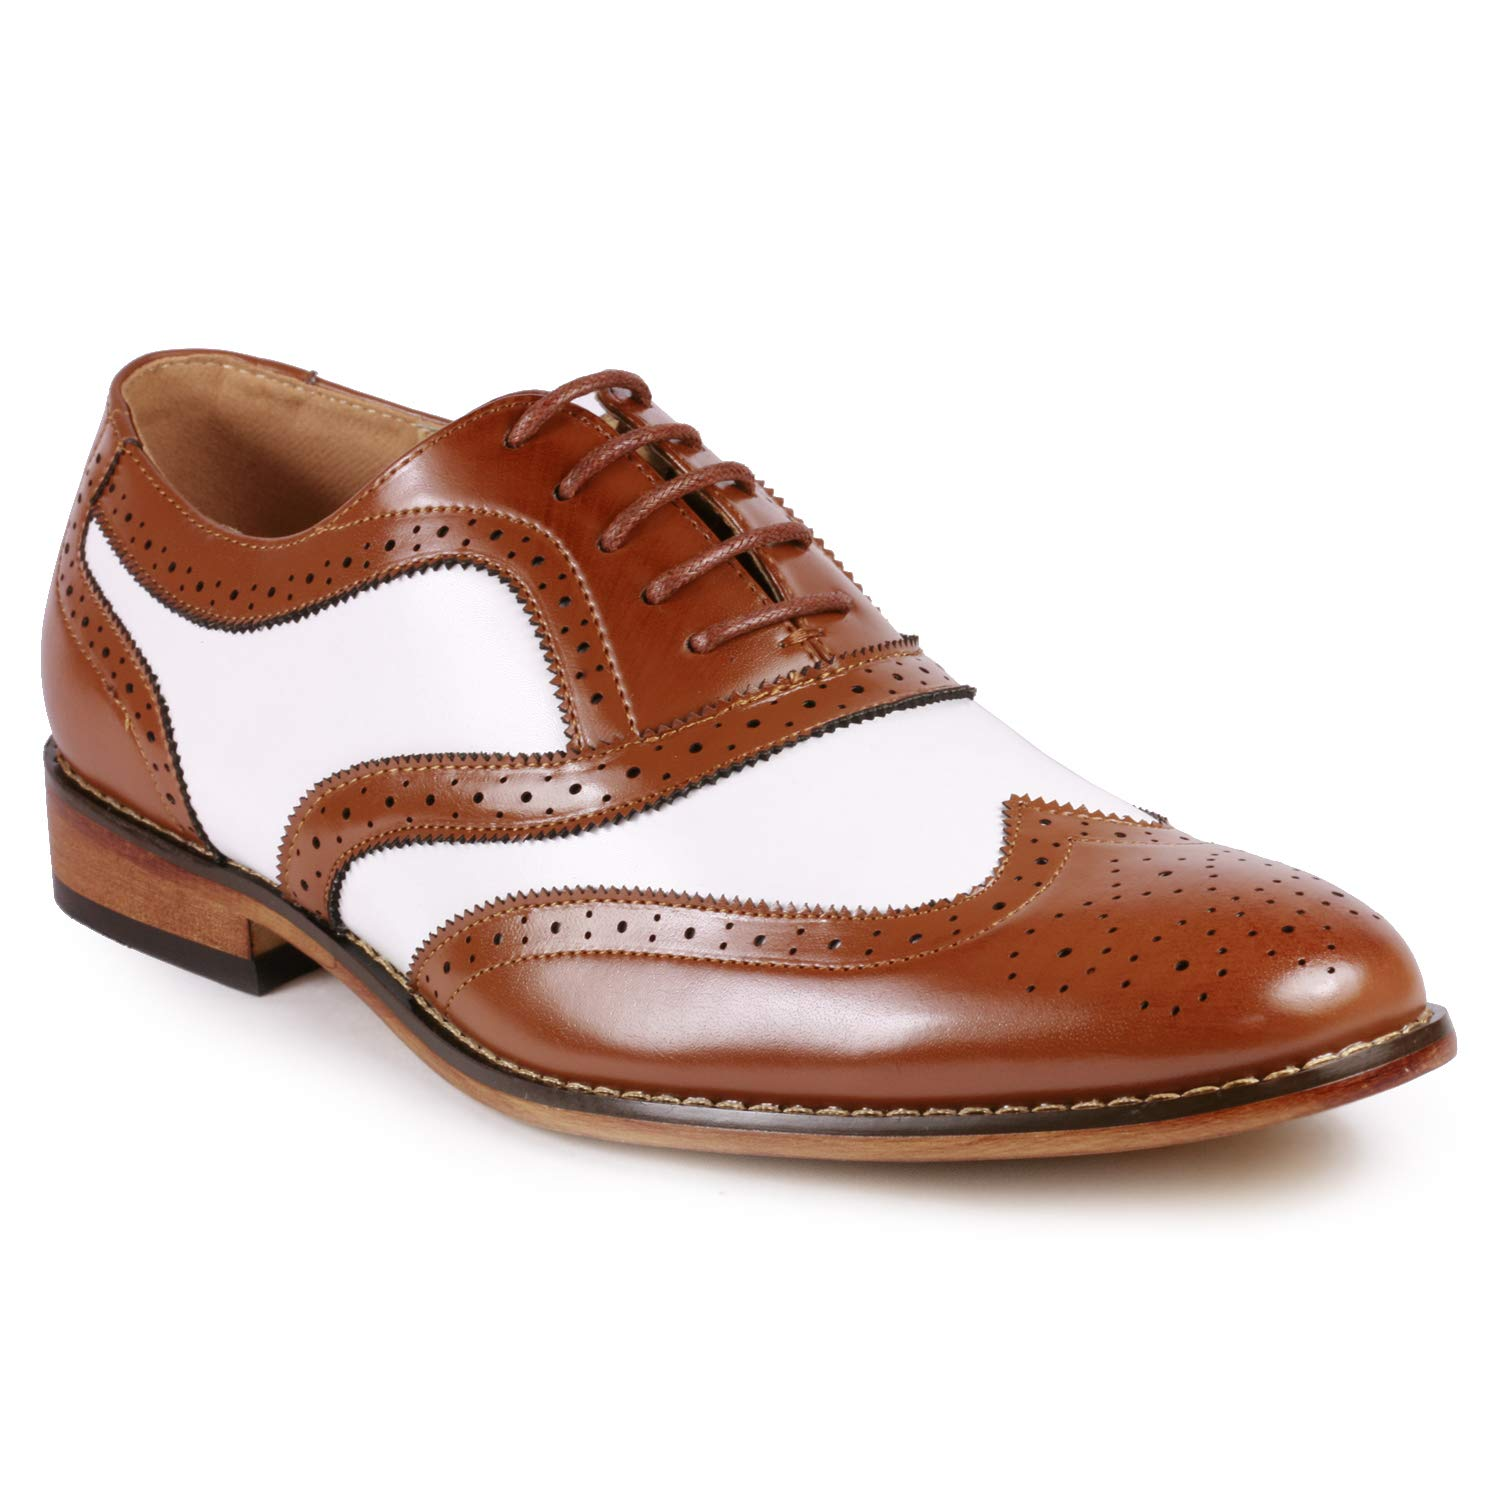 1920s Style Mens Shoes | Peaky Blinders Boots Metrocharm MC145 Mens Two Tone Perforated Wing Tip Lace Up Oxford Dress Shoes $49.99 AT vintagedancer.com